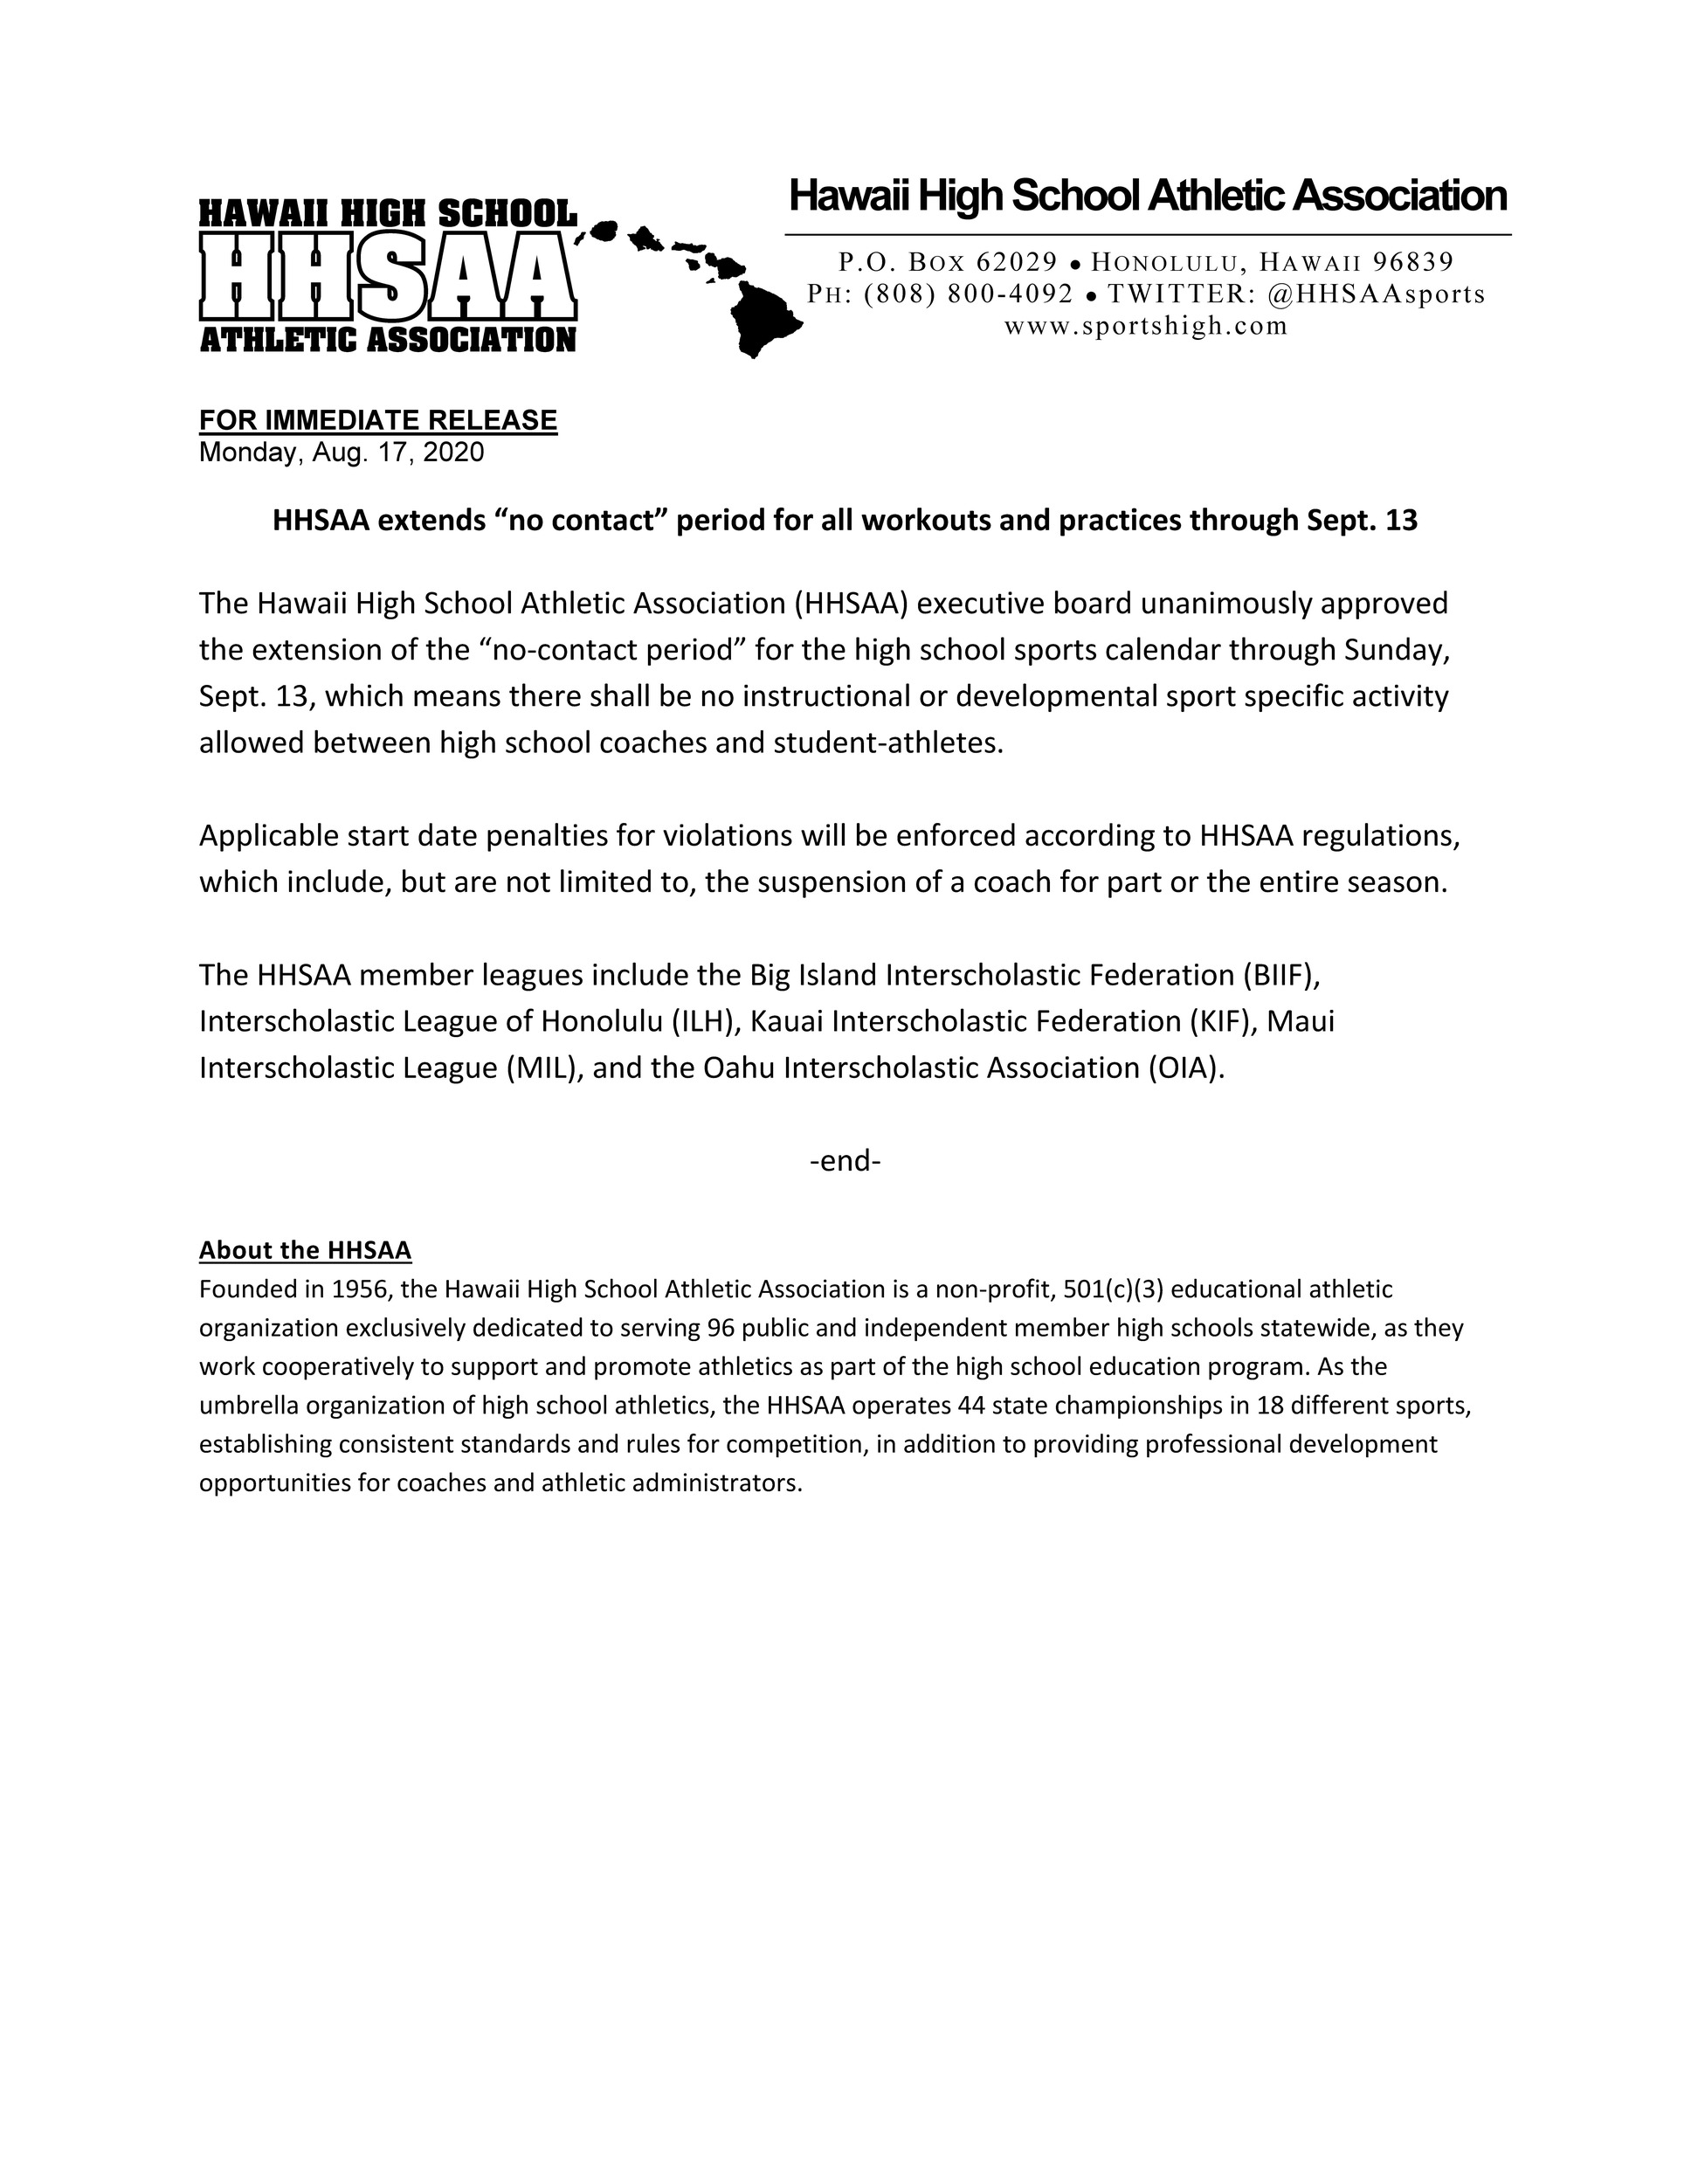 2020-08-17-press-release-hhsaa-extends-no-contact-dead-period-through-sept-13